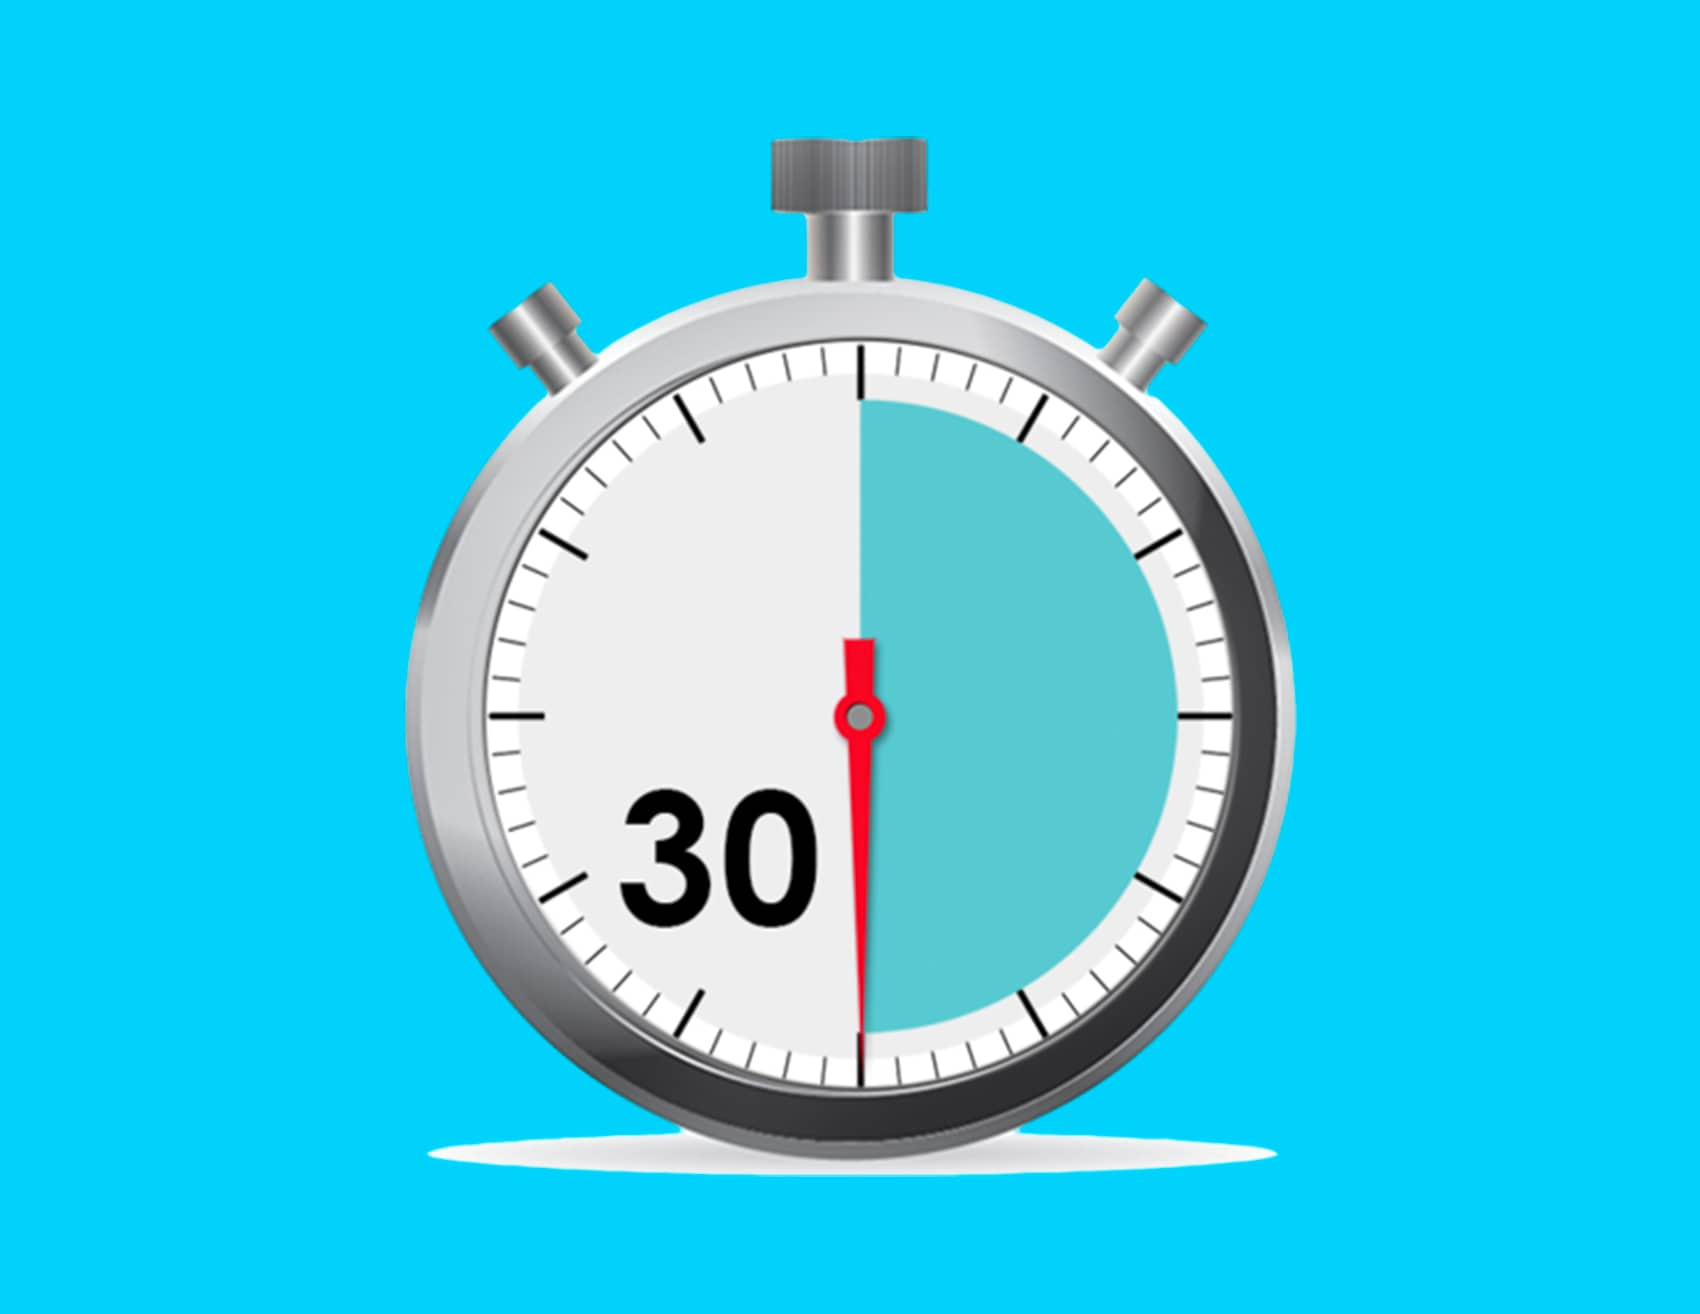 image of clock for the 30 Minute Training